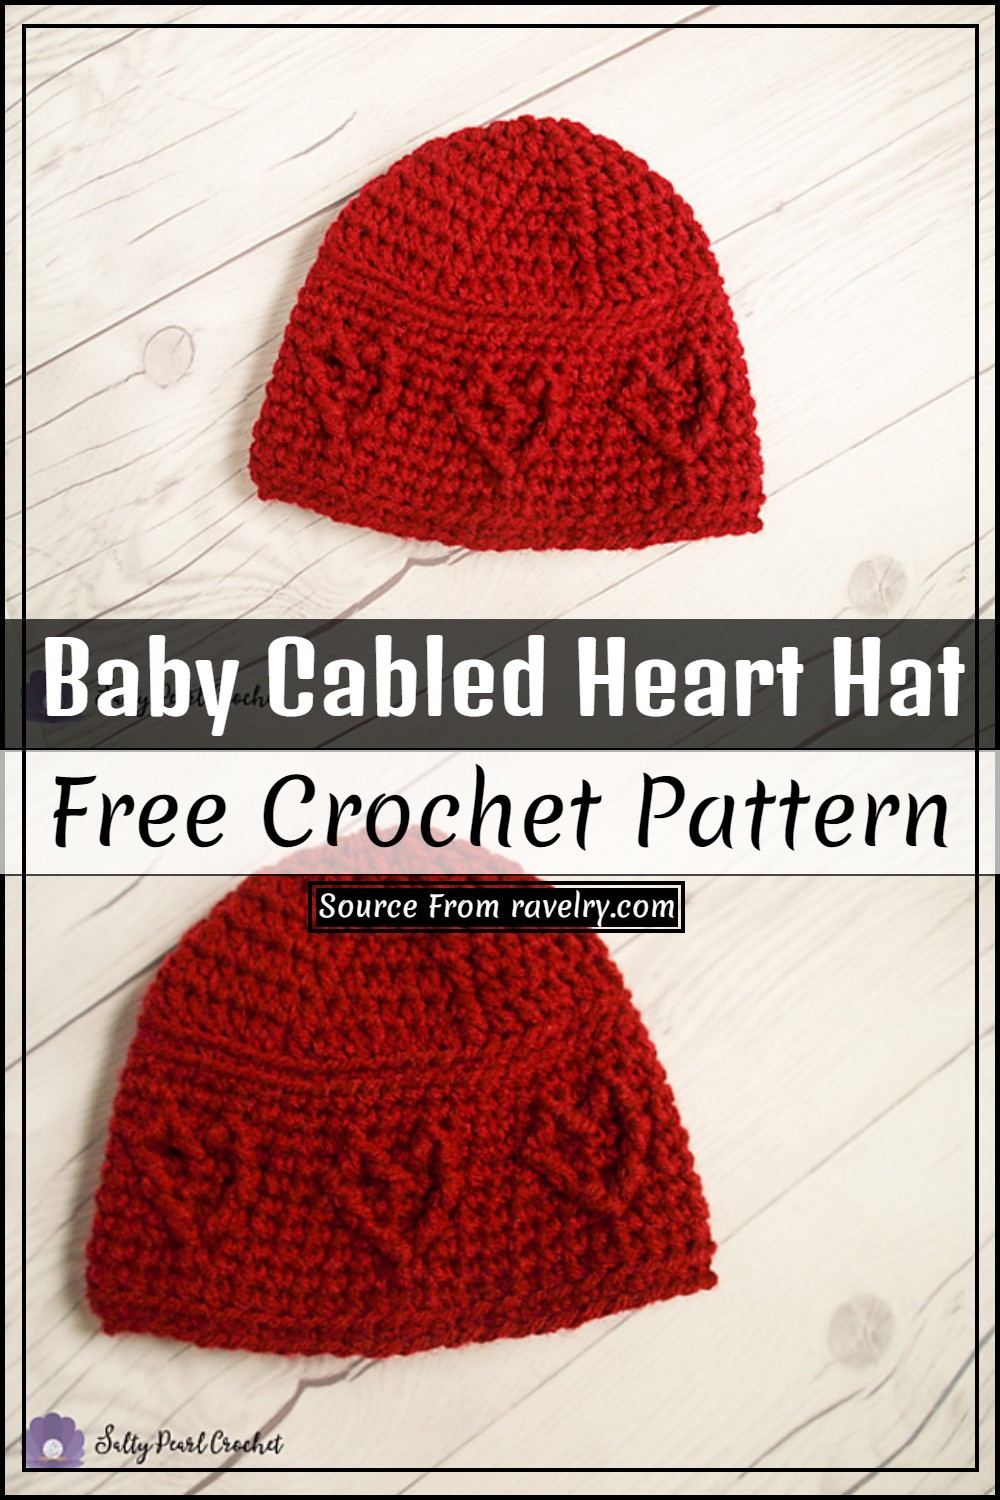 Free Crochet Baby Cabled Heart Hat Pattern